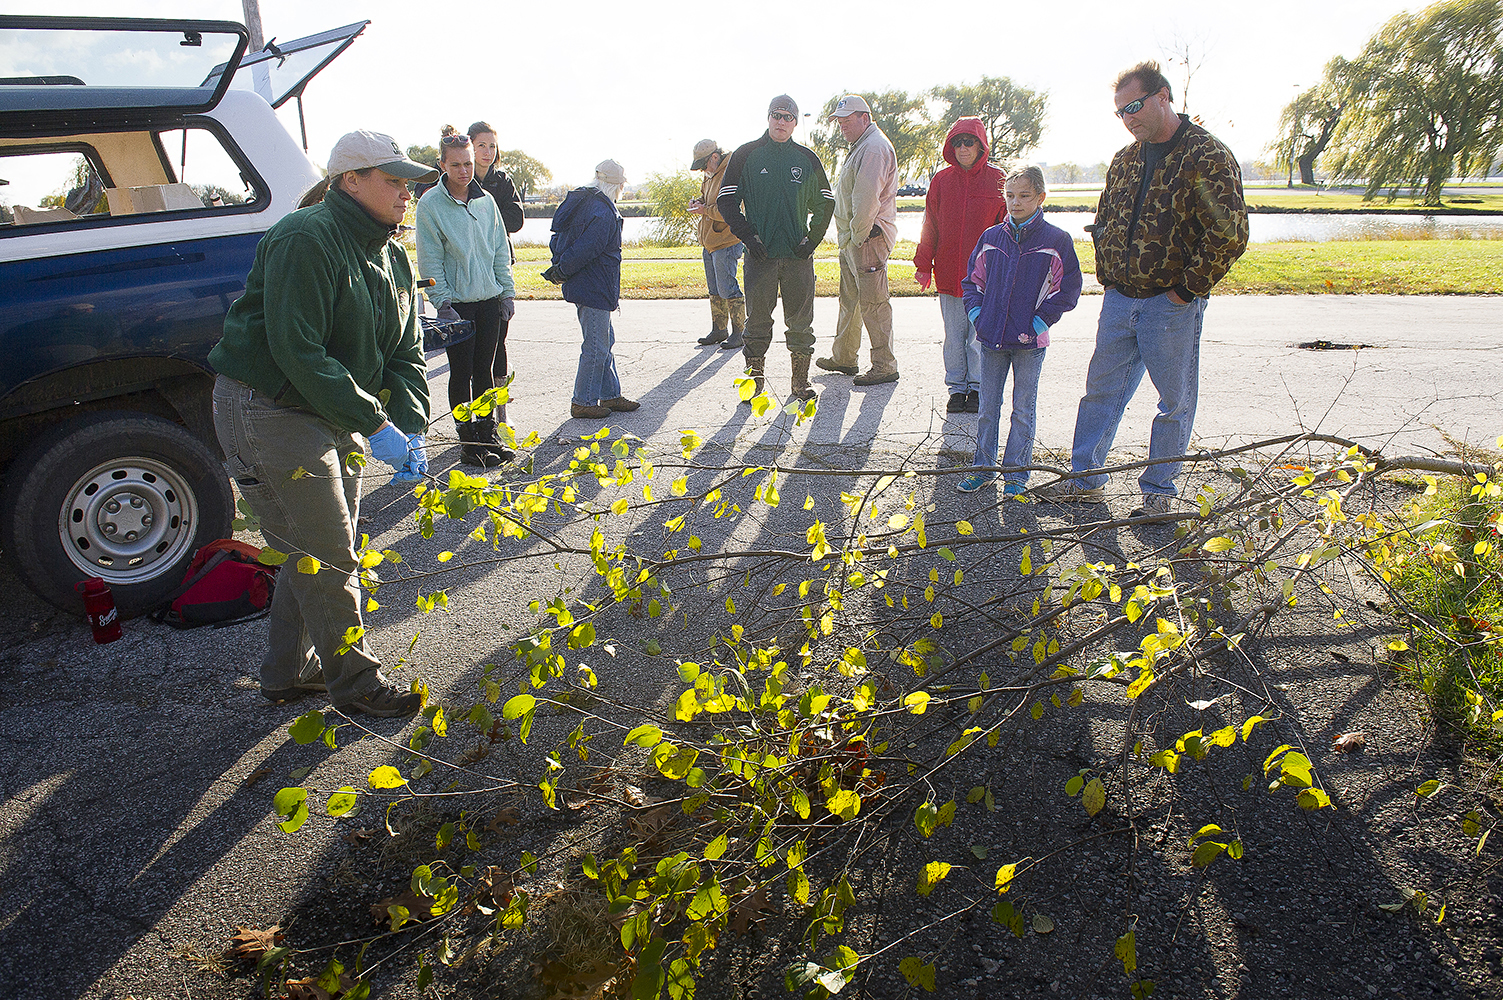 A DNR staffer shows volunteers how to identify invasive shrubs